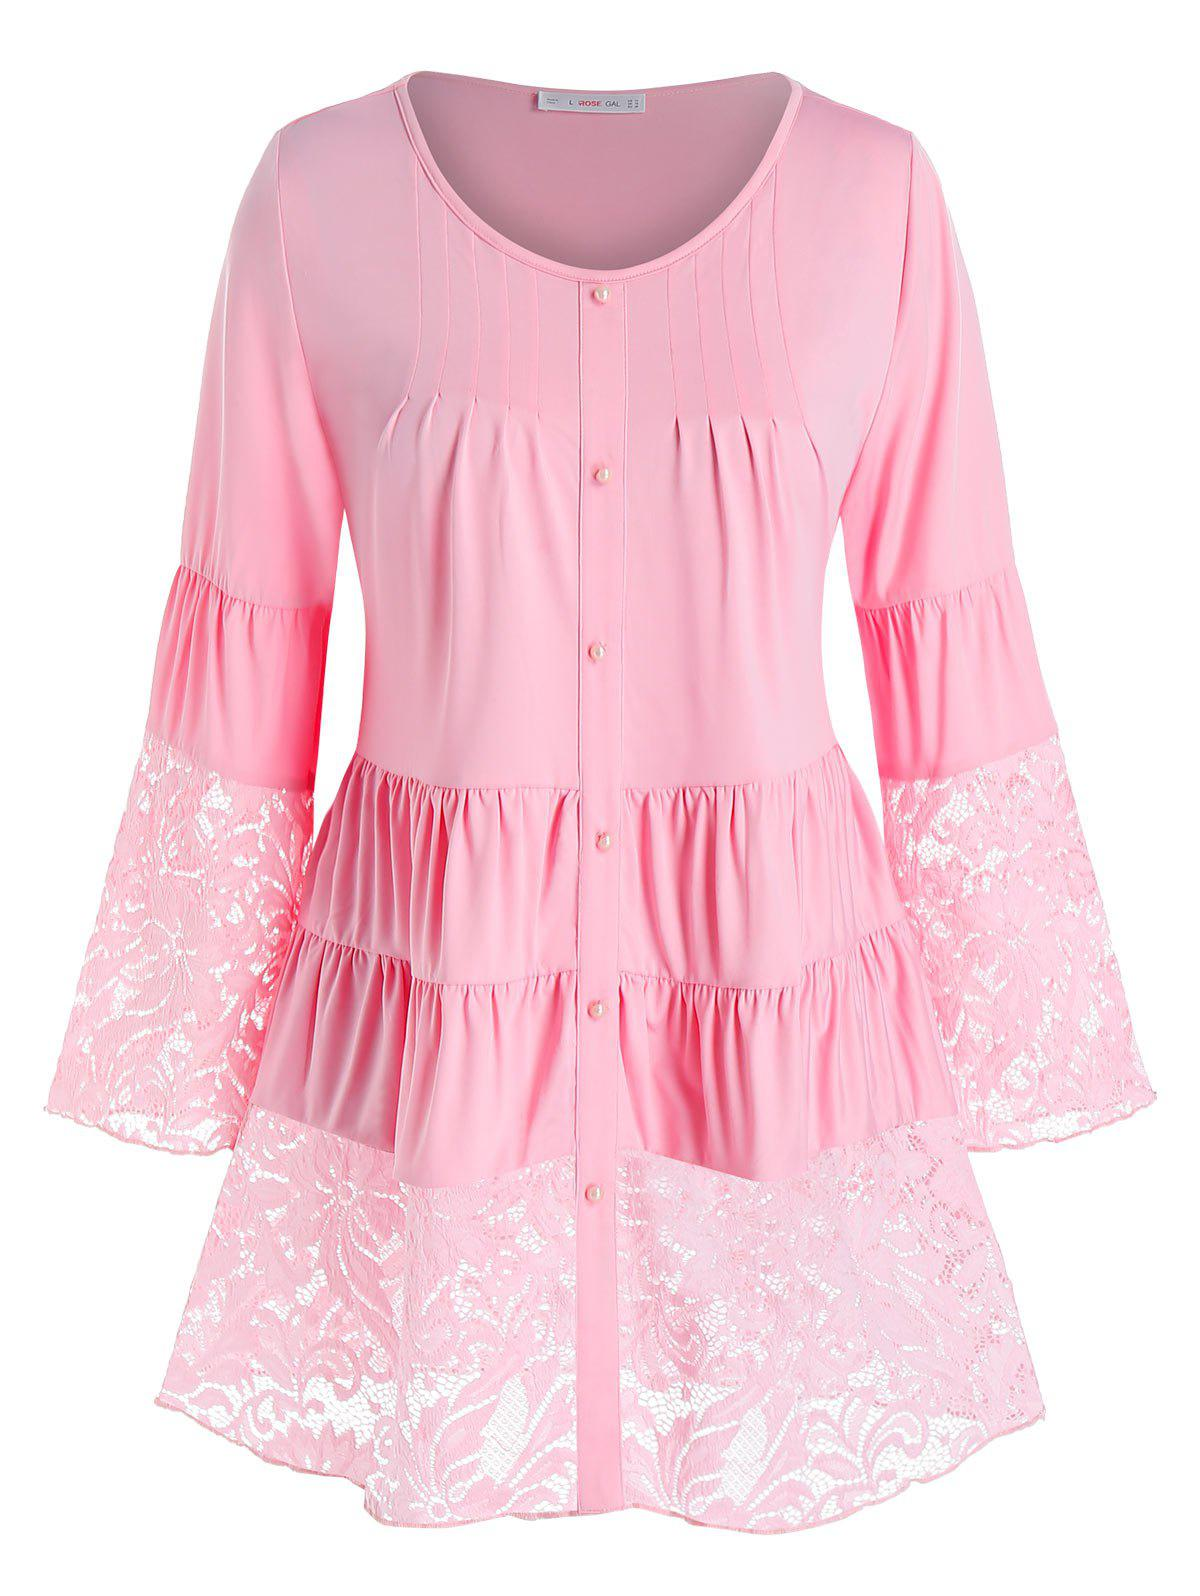 Trendy Plus Size Lace Panel Tiered Ruched Flare Sleeve Blouse